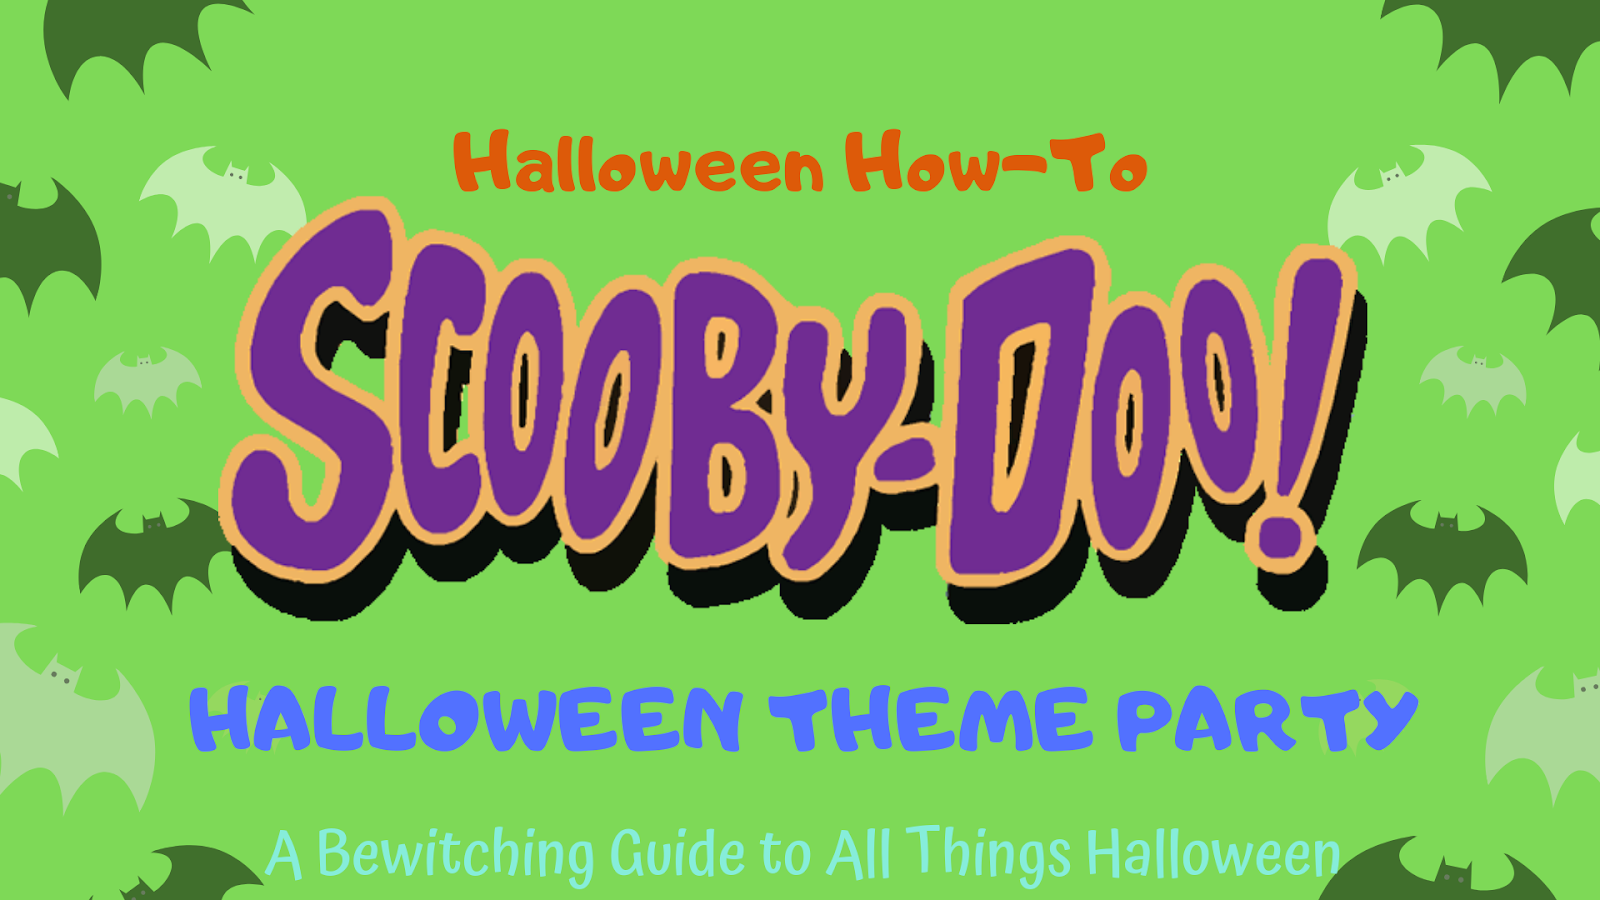 Halloween Theme Party.A Bewitching Guide To All Things Halloween Scooby Doo Halloween